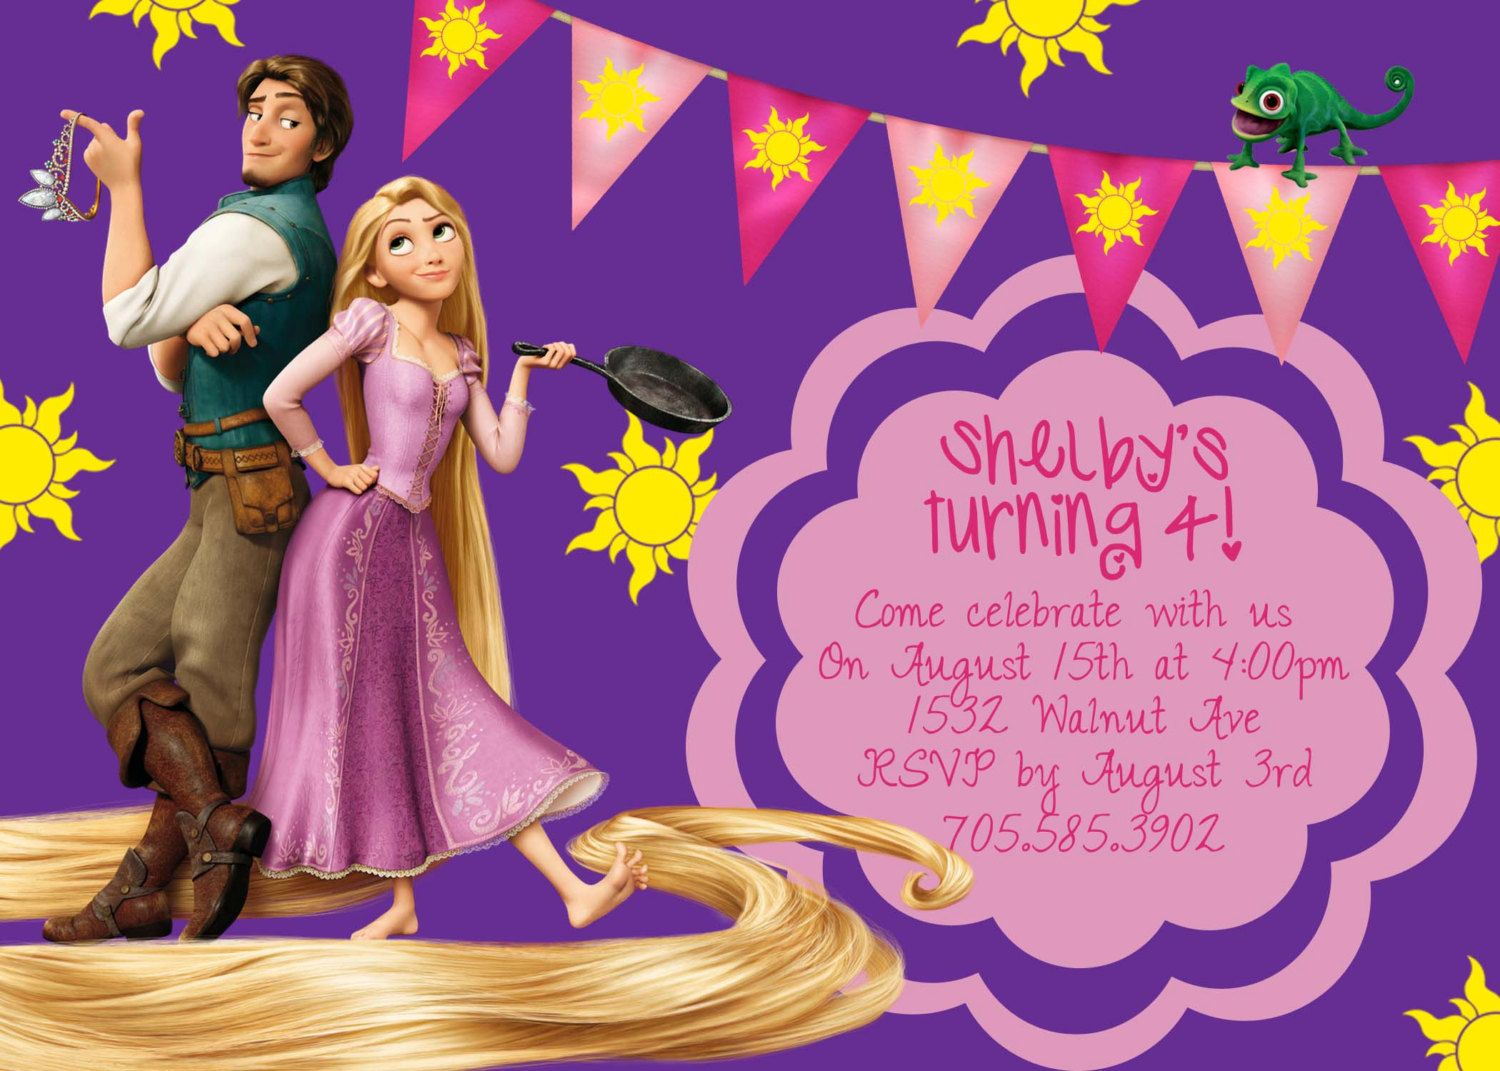 tangled rapunzel purple birthday invite card can be personalized tangled rapunzel purple birthday invite card can be personalized or customized invitation jpeg printable children holiday